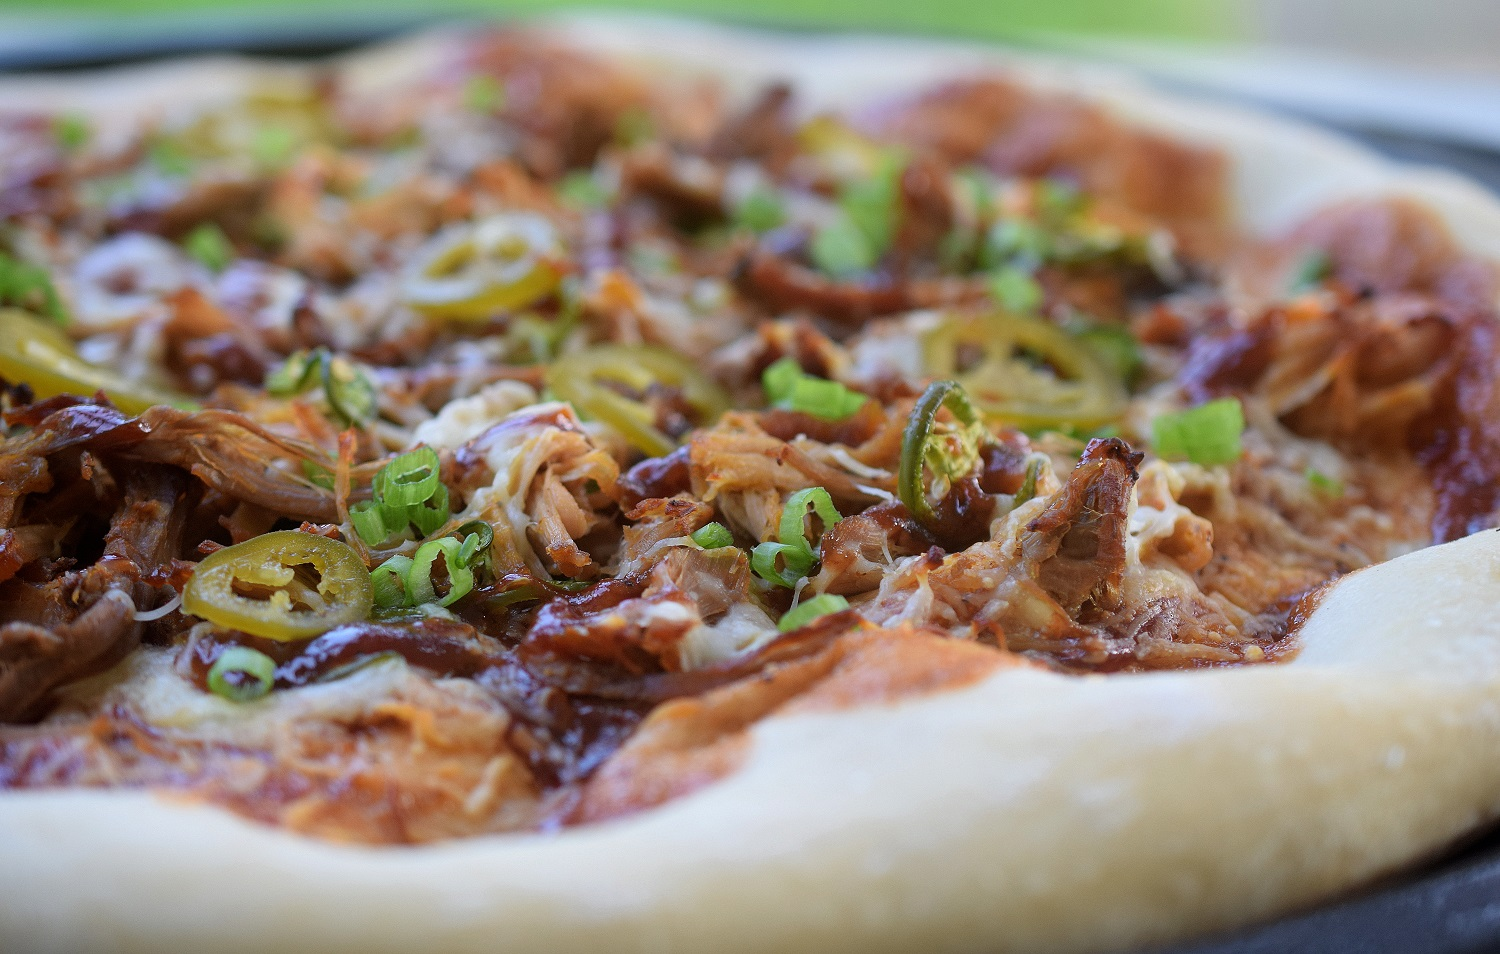 Pulled Pork Pizza Try These Unusual Leftover Pulled Pork Ideas